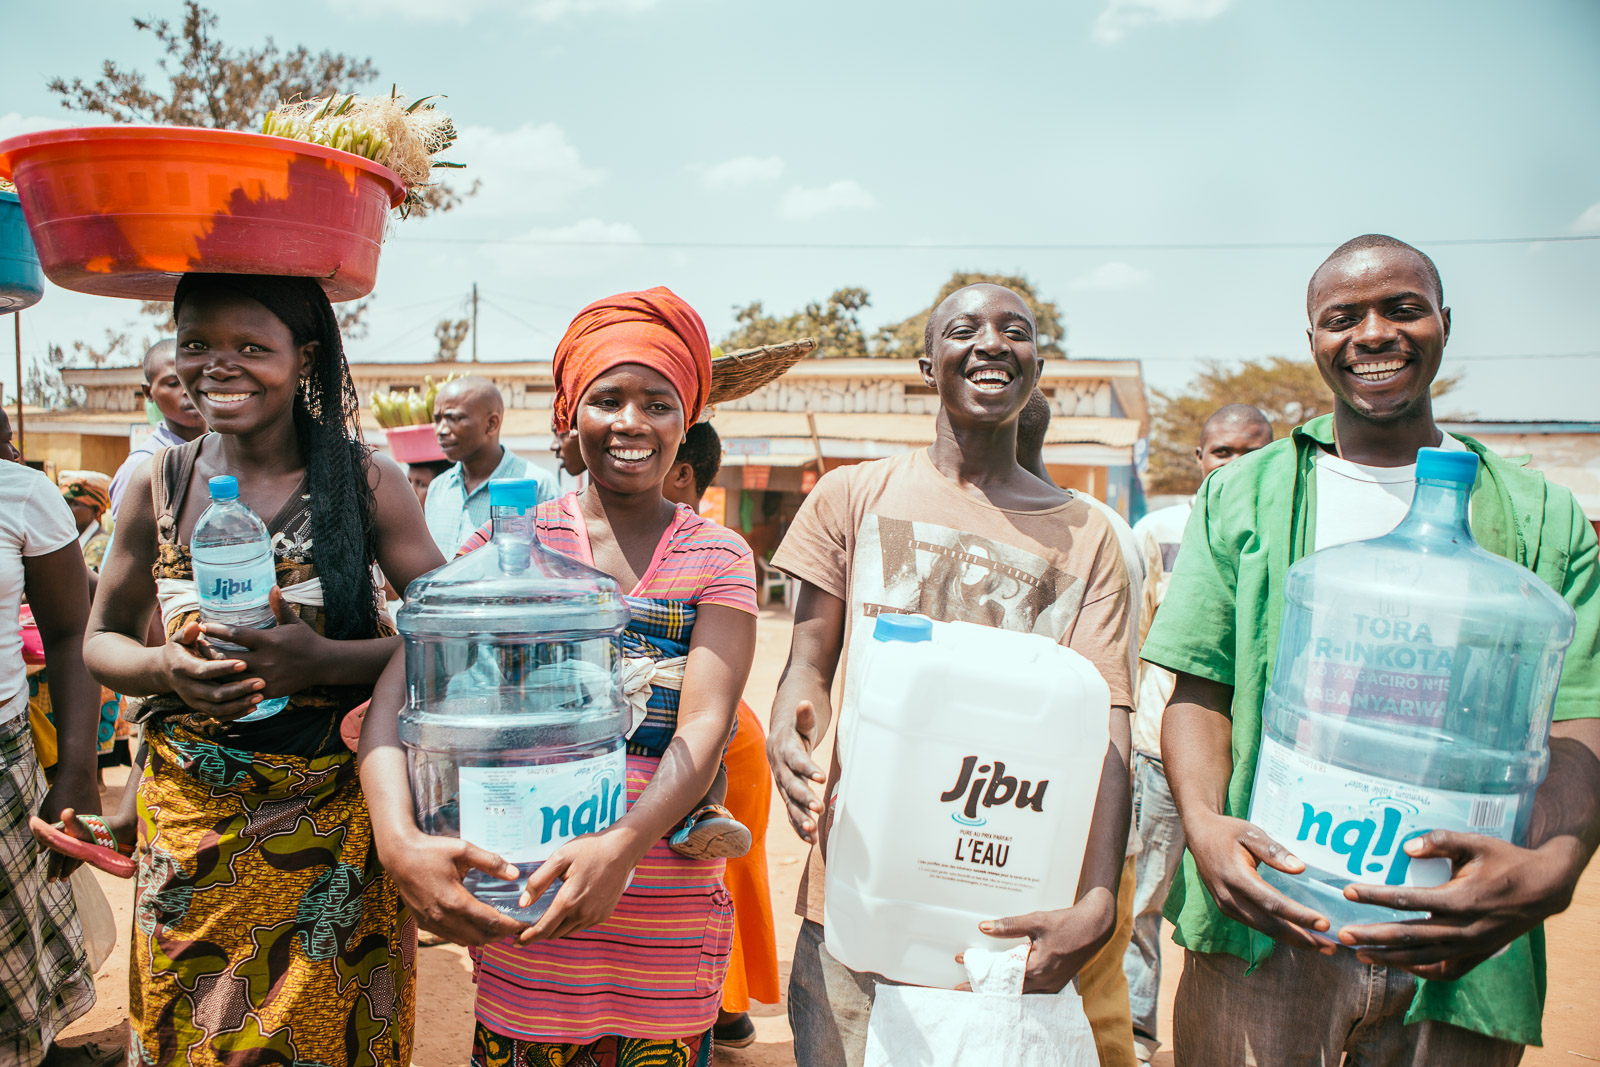 Image of four people getting water from Jibu